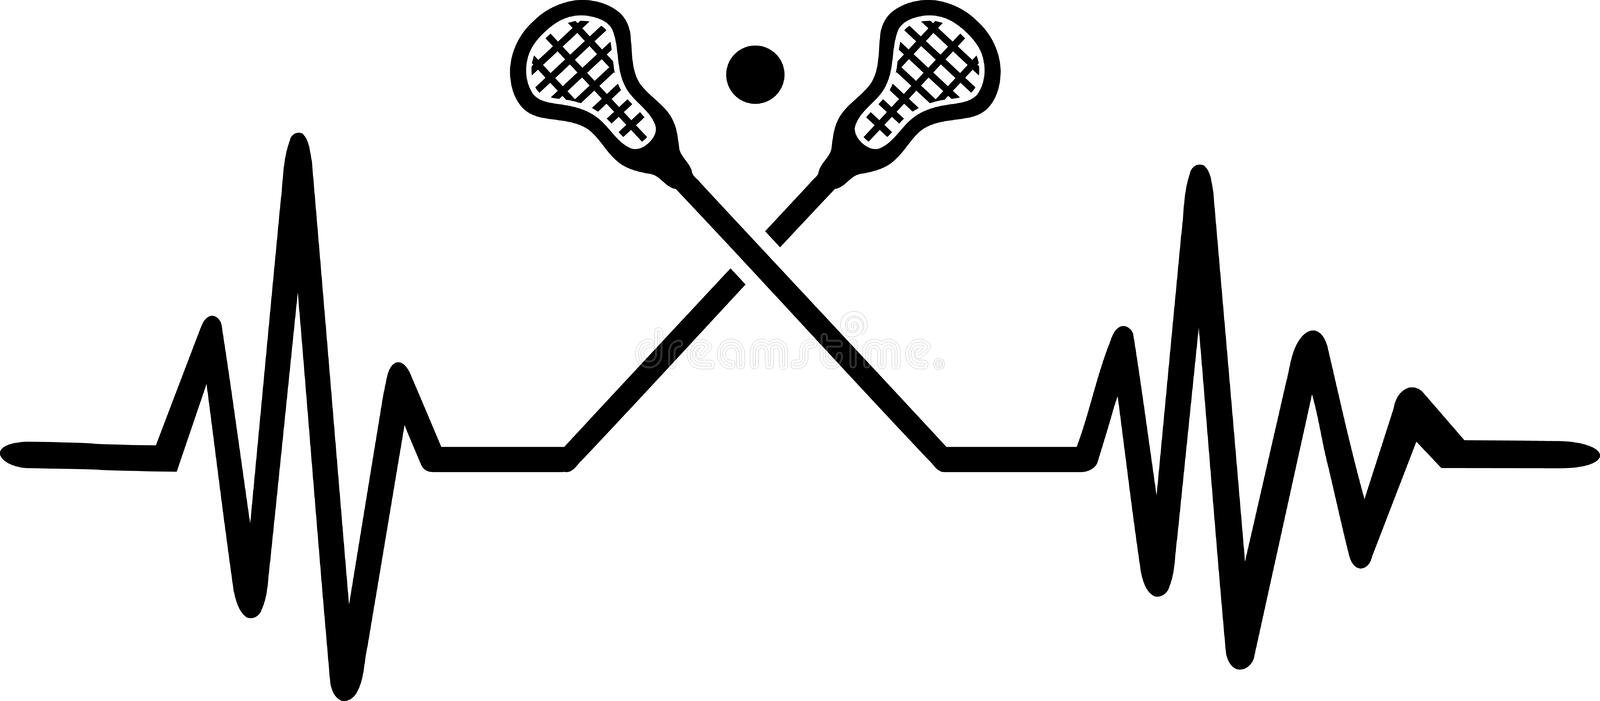 Lacrosse heartbeat line. Heartbeat pulse line with two crossed lacrosse sticks and a ball stock illustration